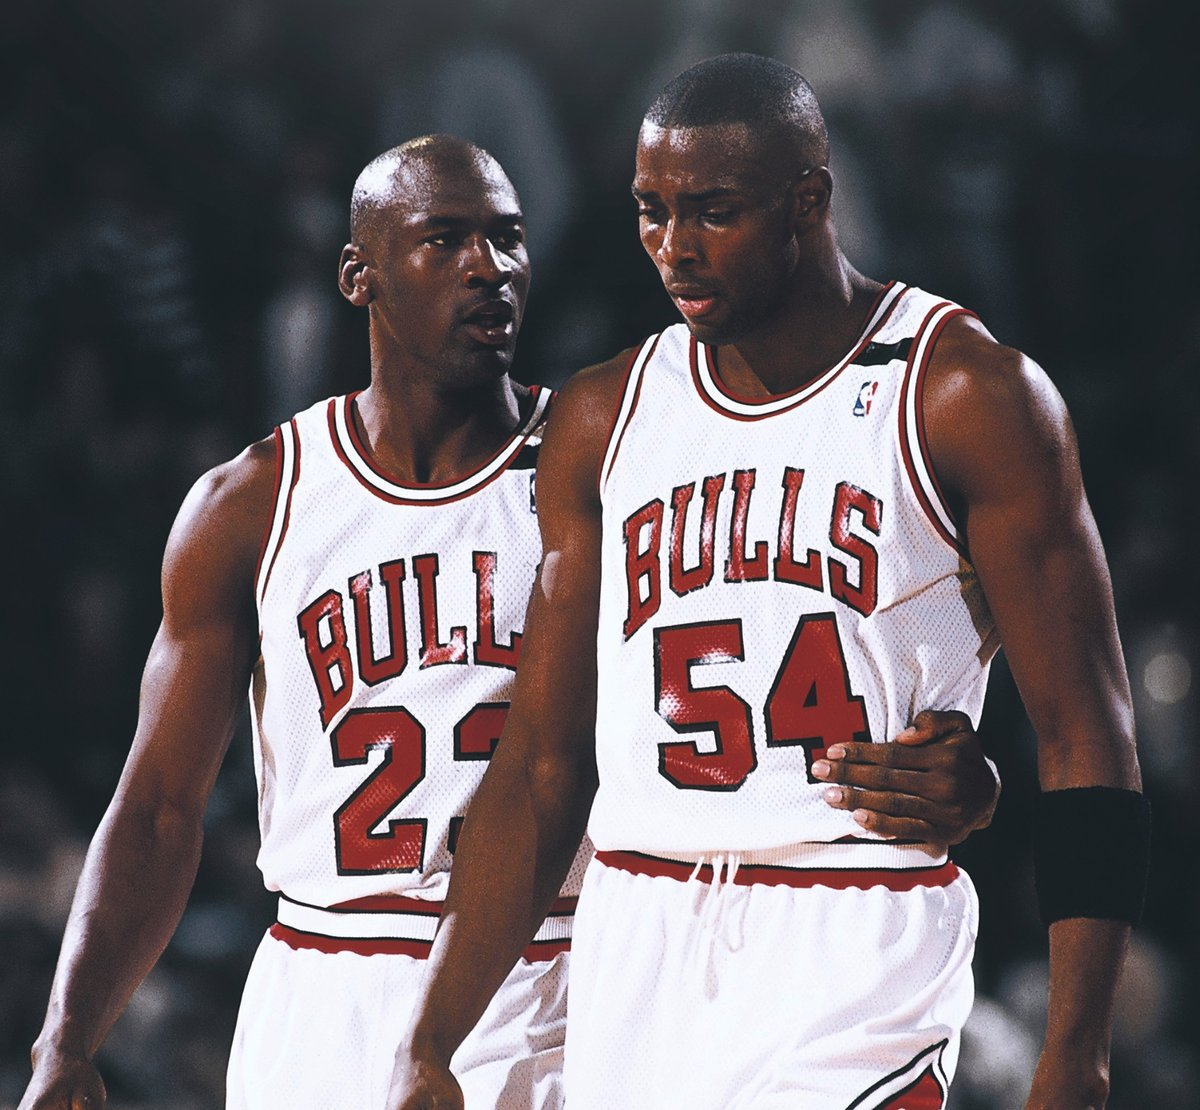 """Lie, lie, lie. ... If MJ had a grudge with me, let's settle this like men.""   Horace Grant responds to Michael Jordan saying Grant was the source for 'The Jordan Rules' book.  (via ESPN 1000 Chicago) https://t.co/hlJq4FFOgn"